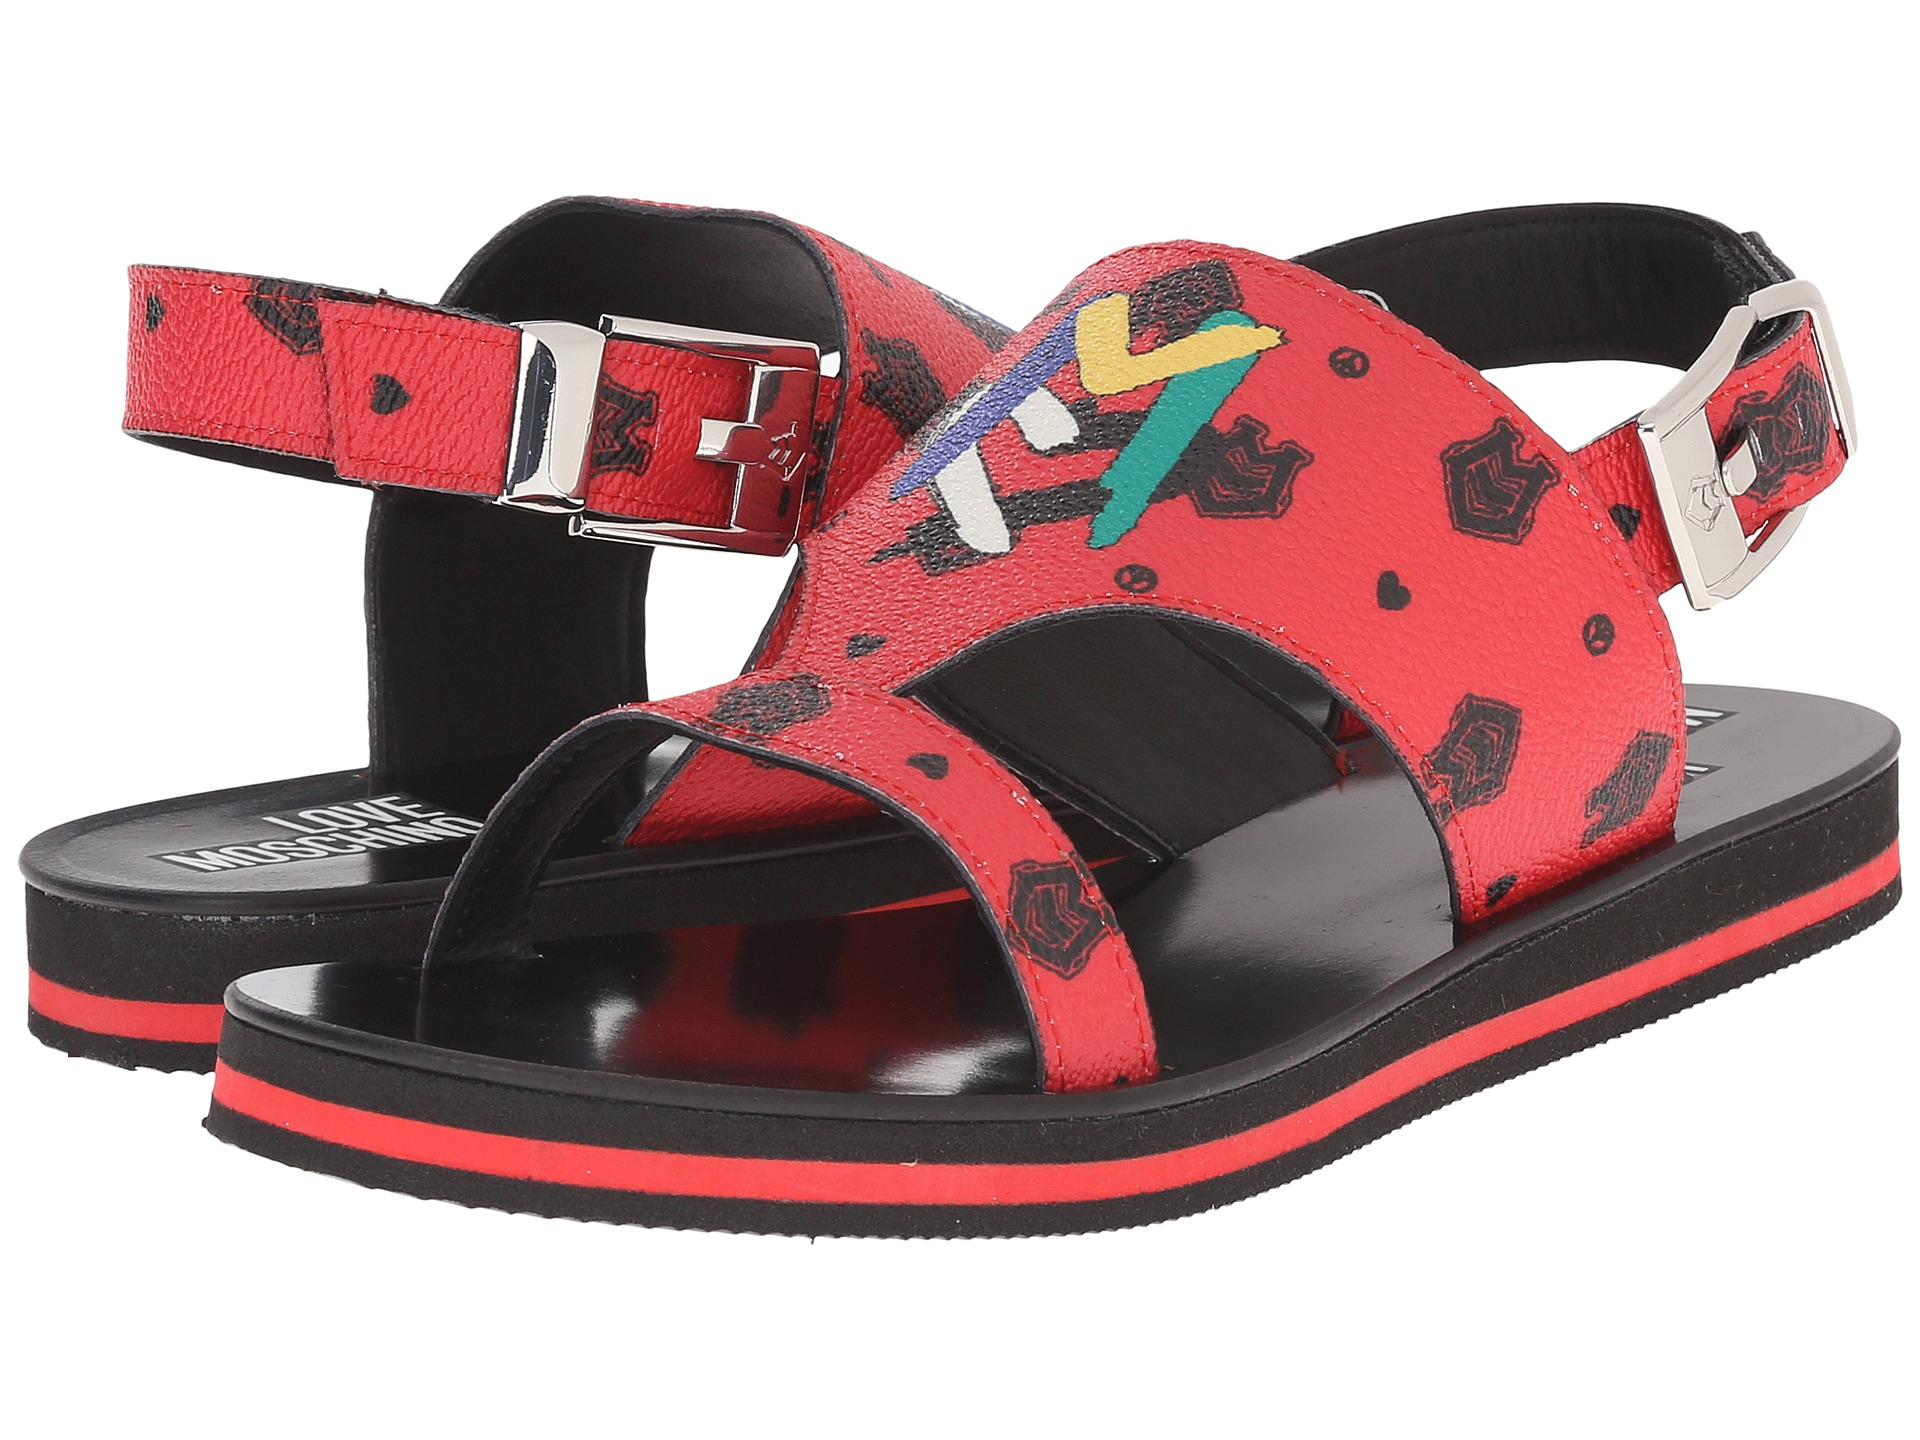 65f9ae75ee2 Love Moschino Thong Sandal W/ Logo Print in Red - Lyst